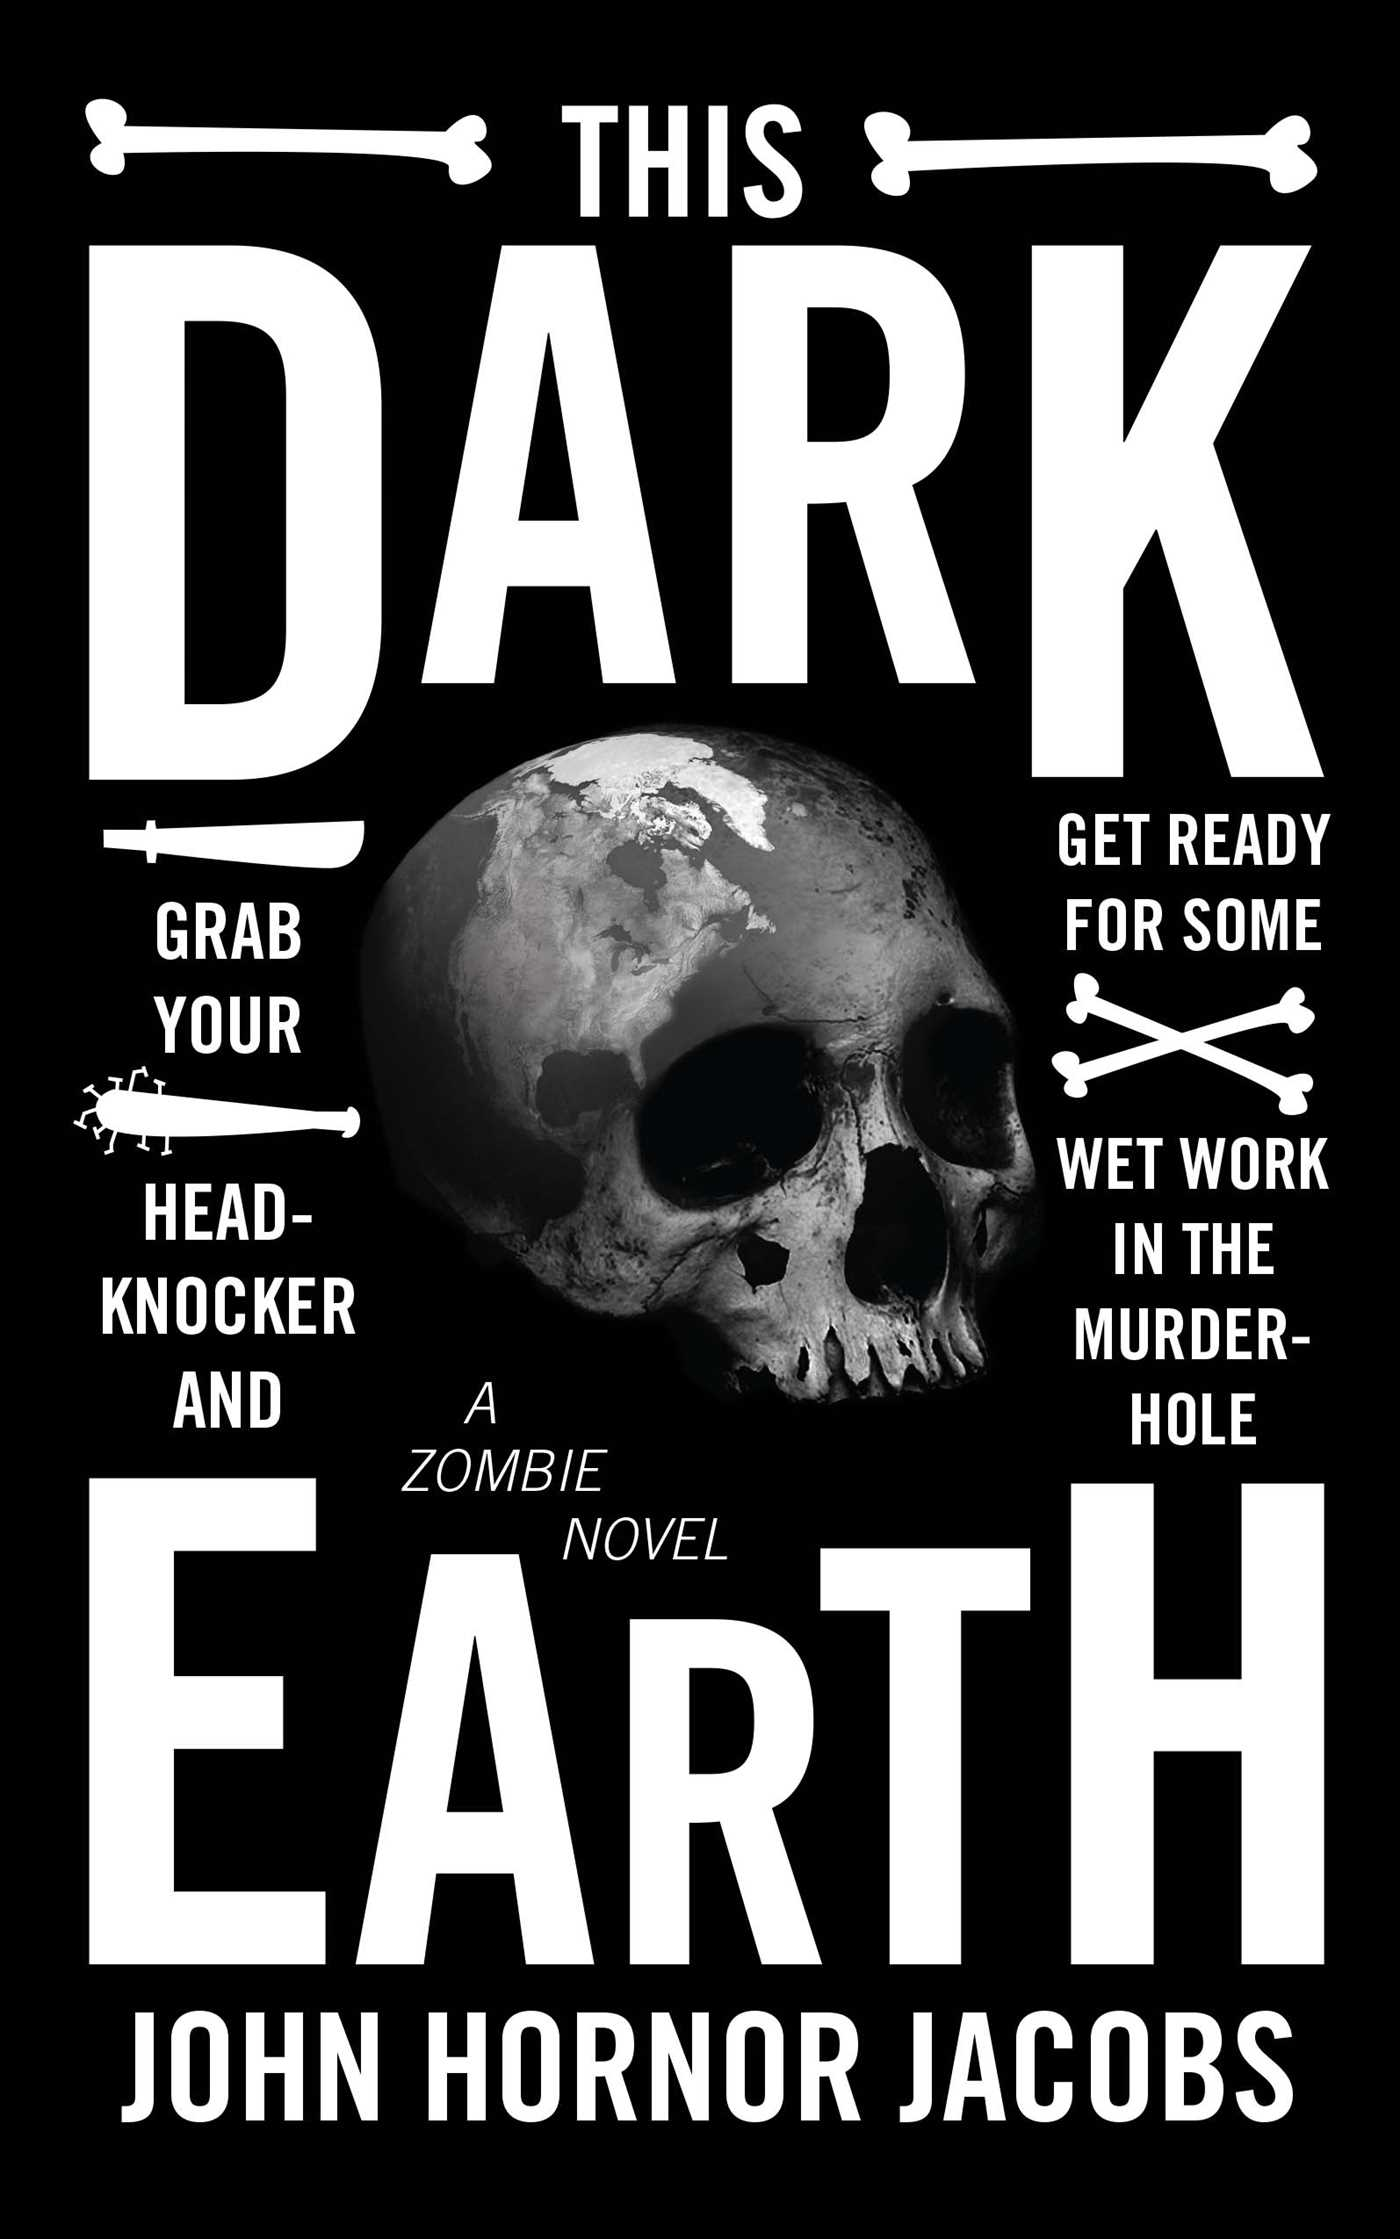 This-dark-earth-9781451666663_hr